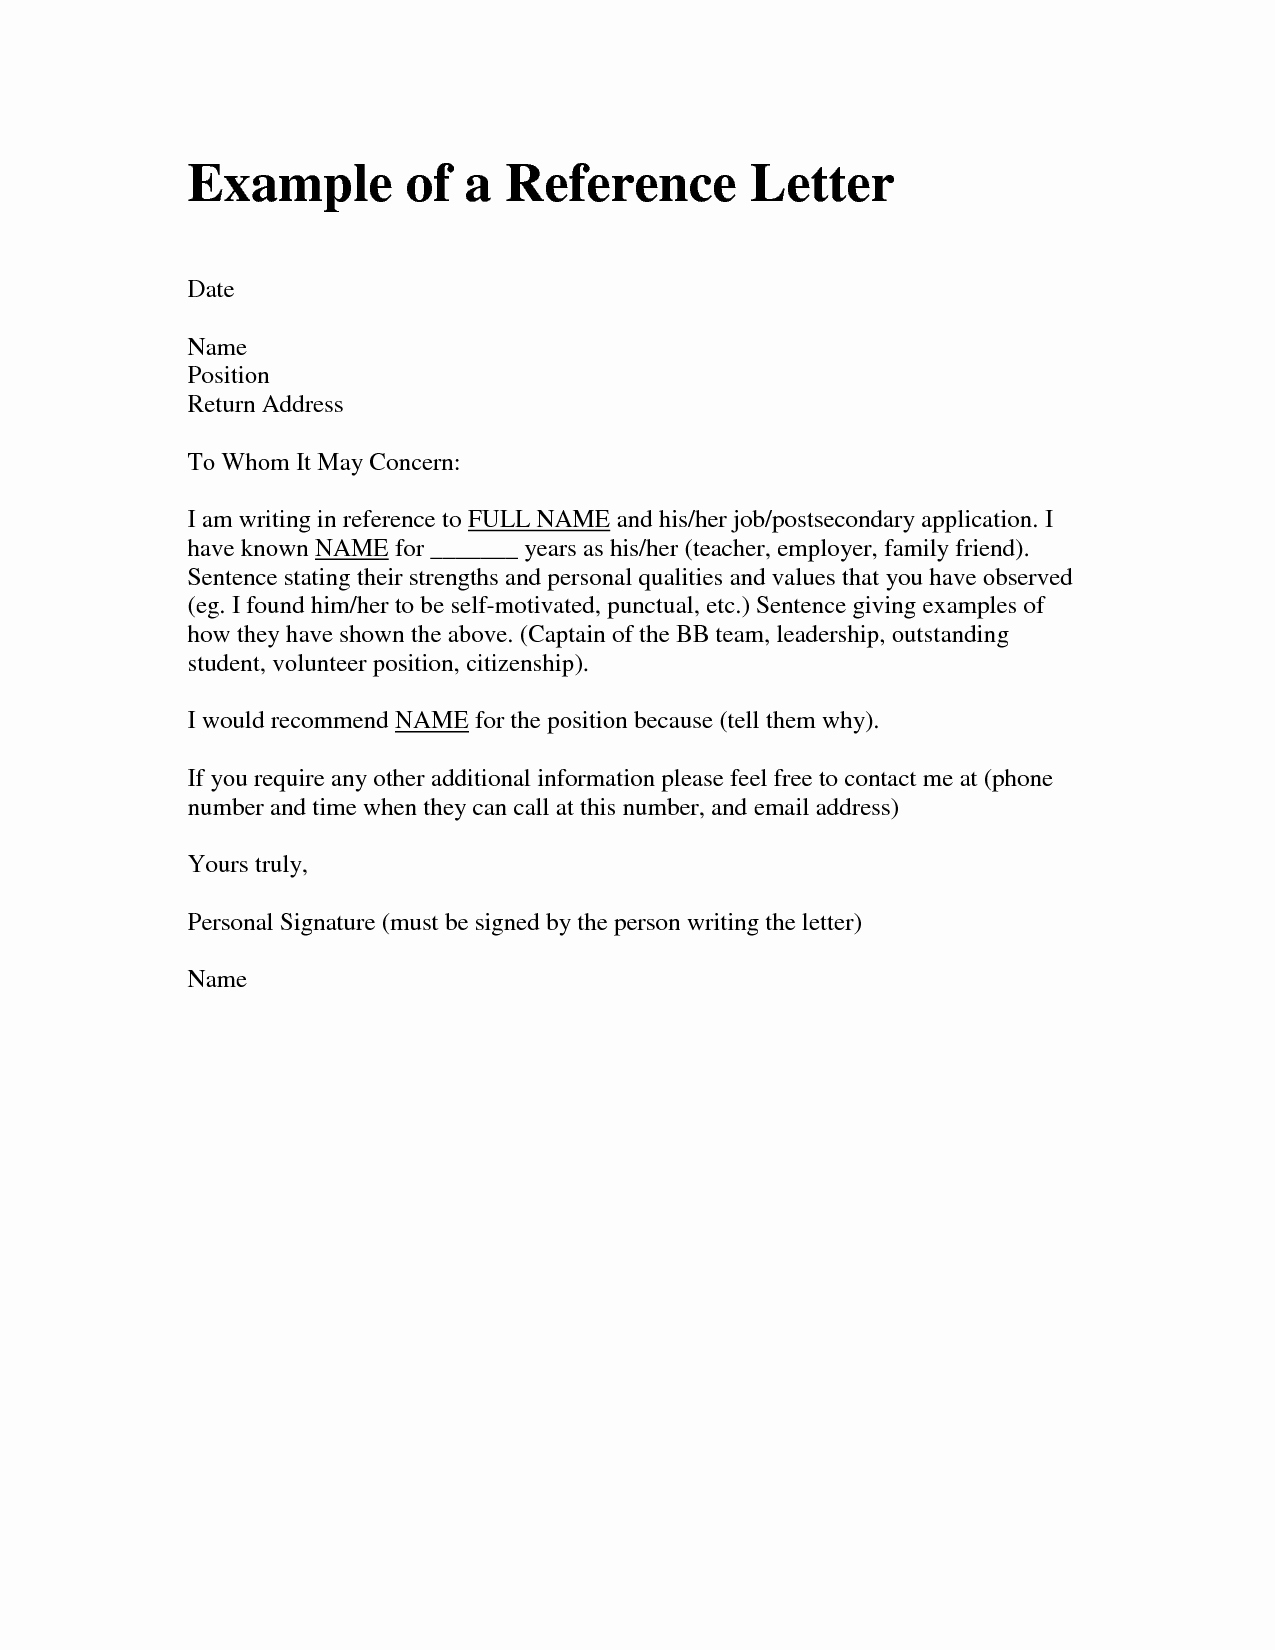 Letter Of Recommendation Templates Luxury Letter Re Mendation Template for Friend Letter Art